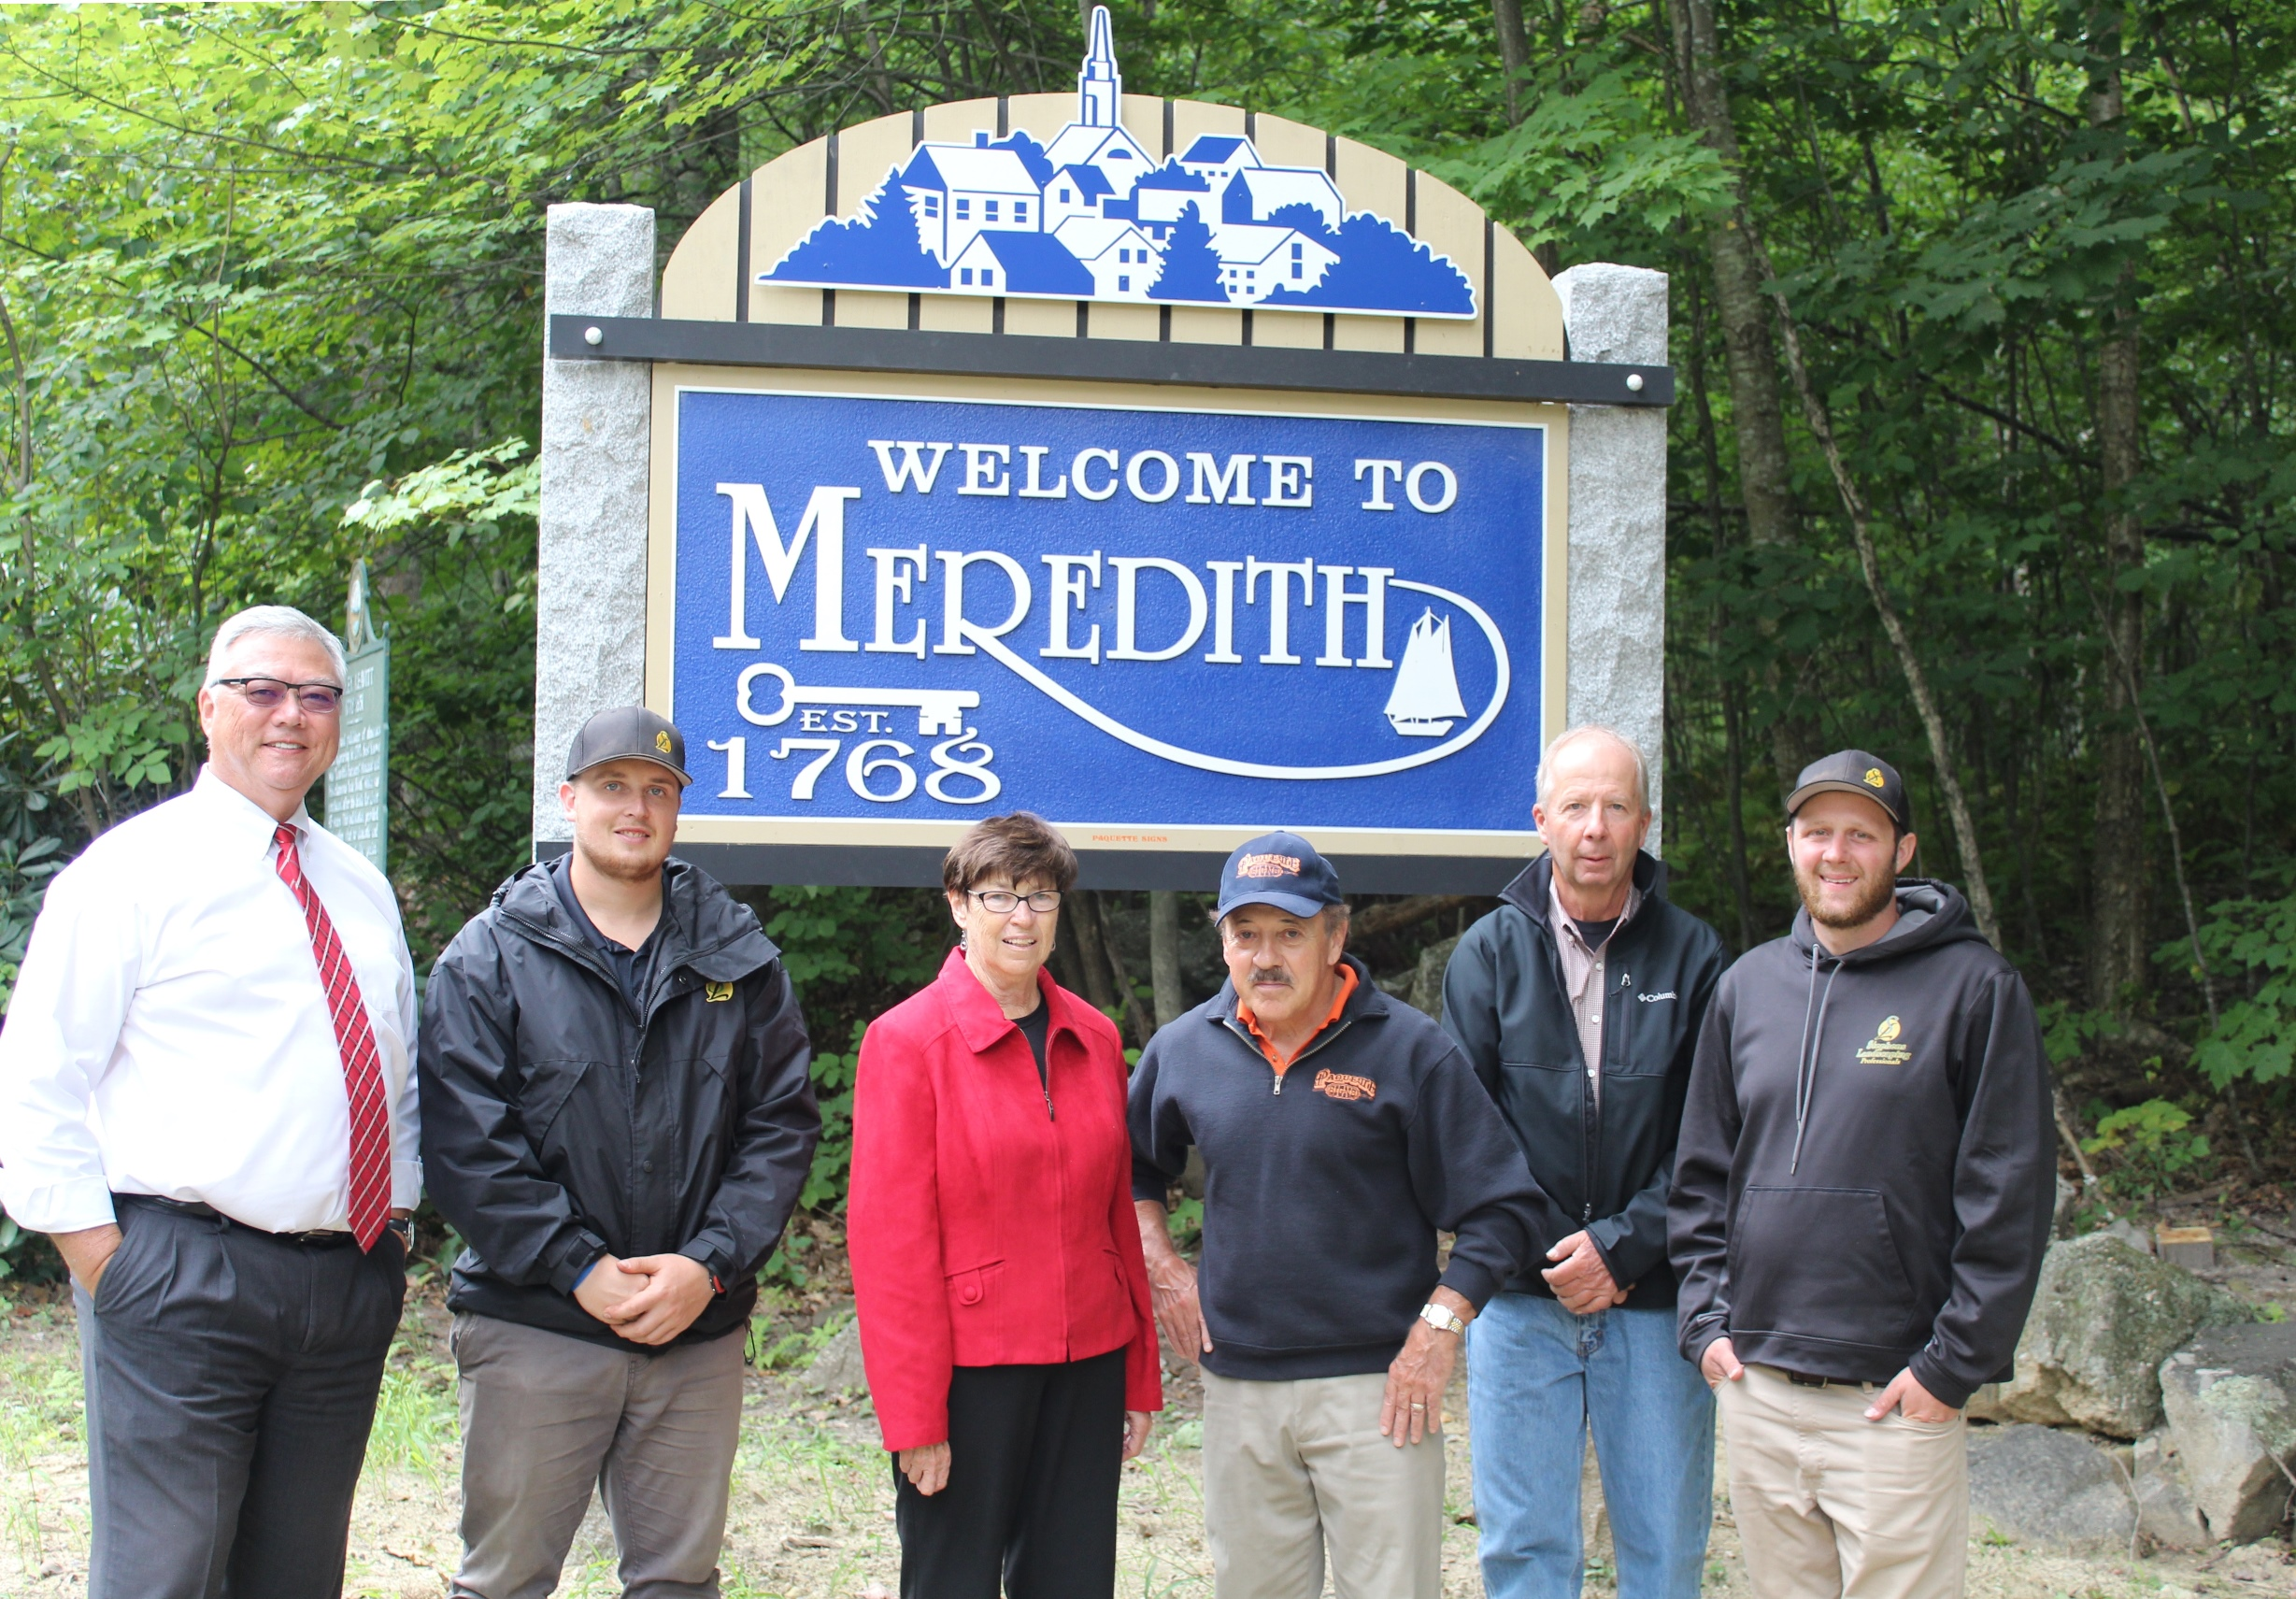 Meredith Installs New Welcome Signs